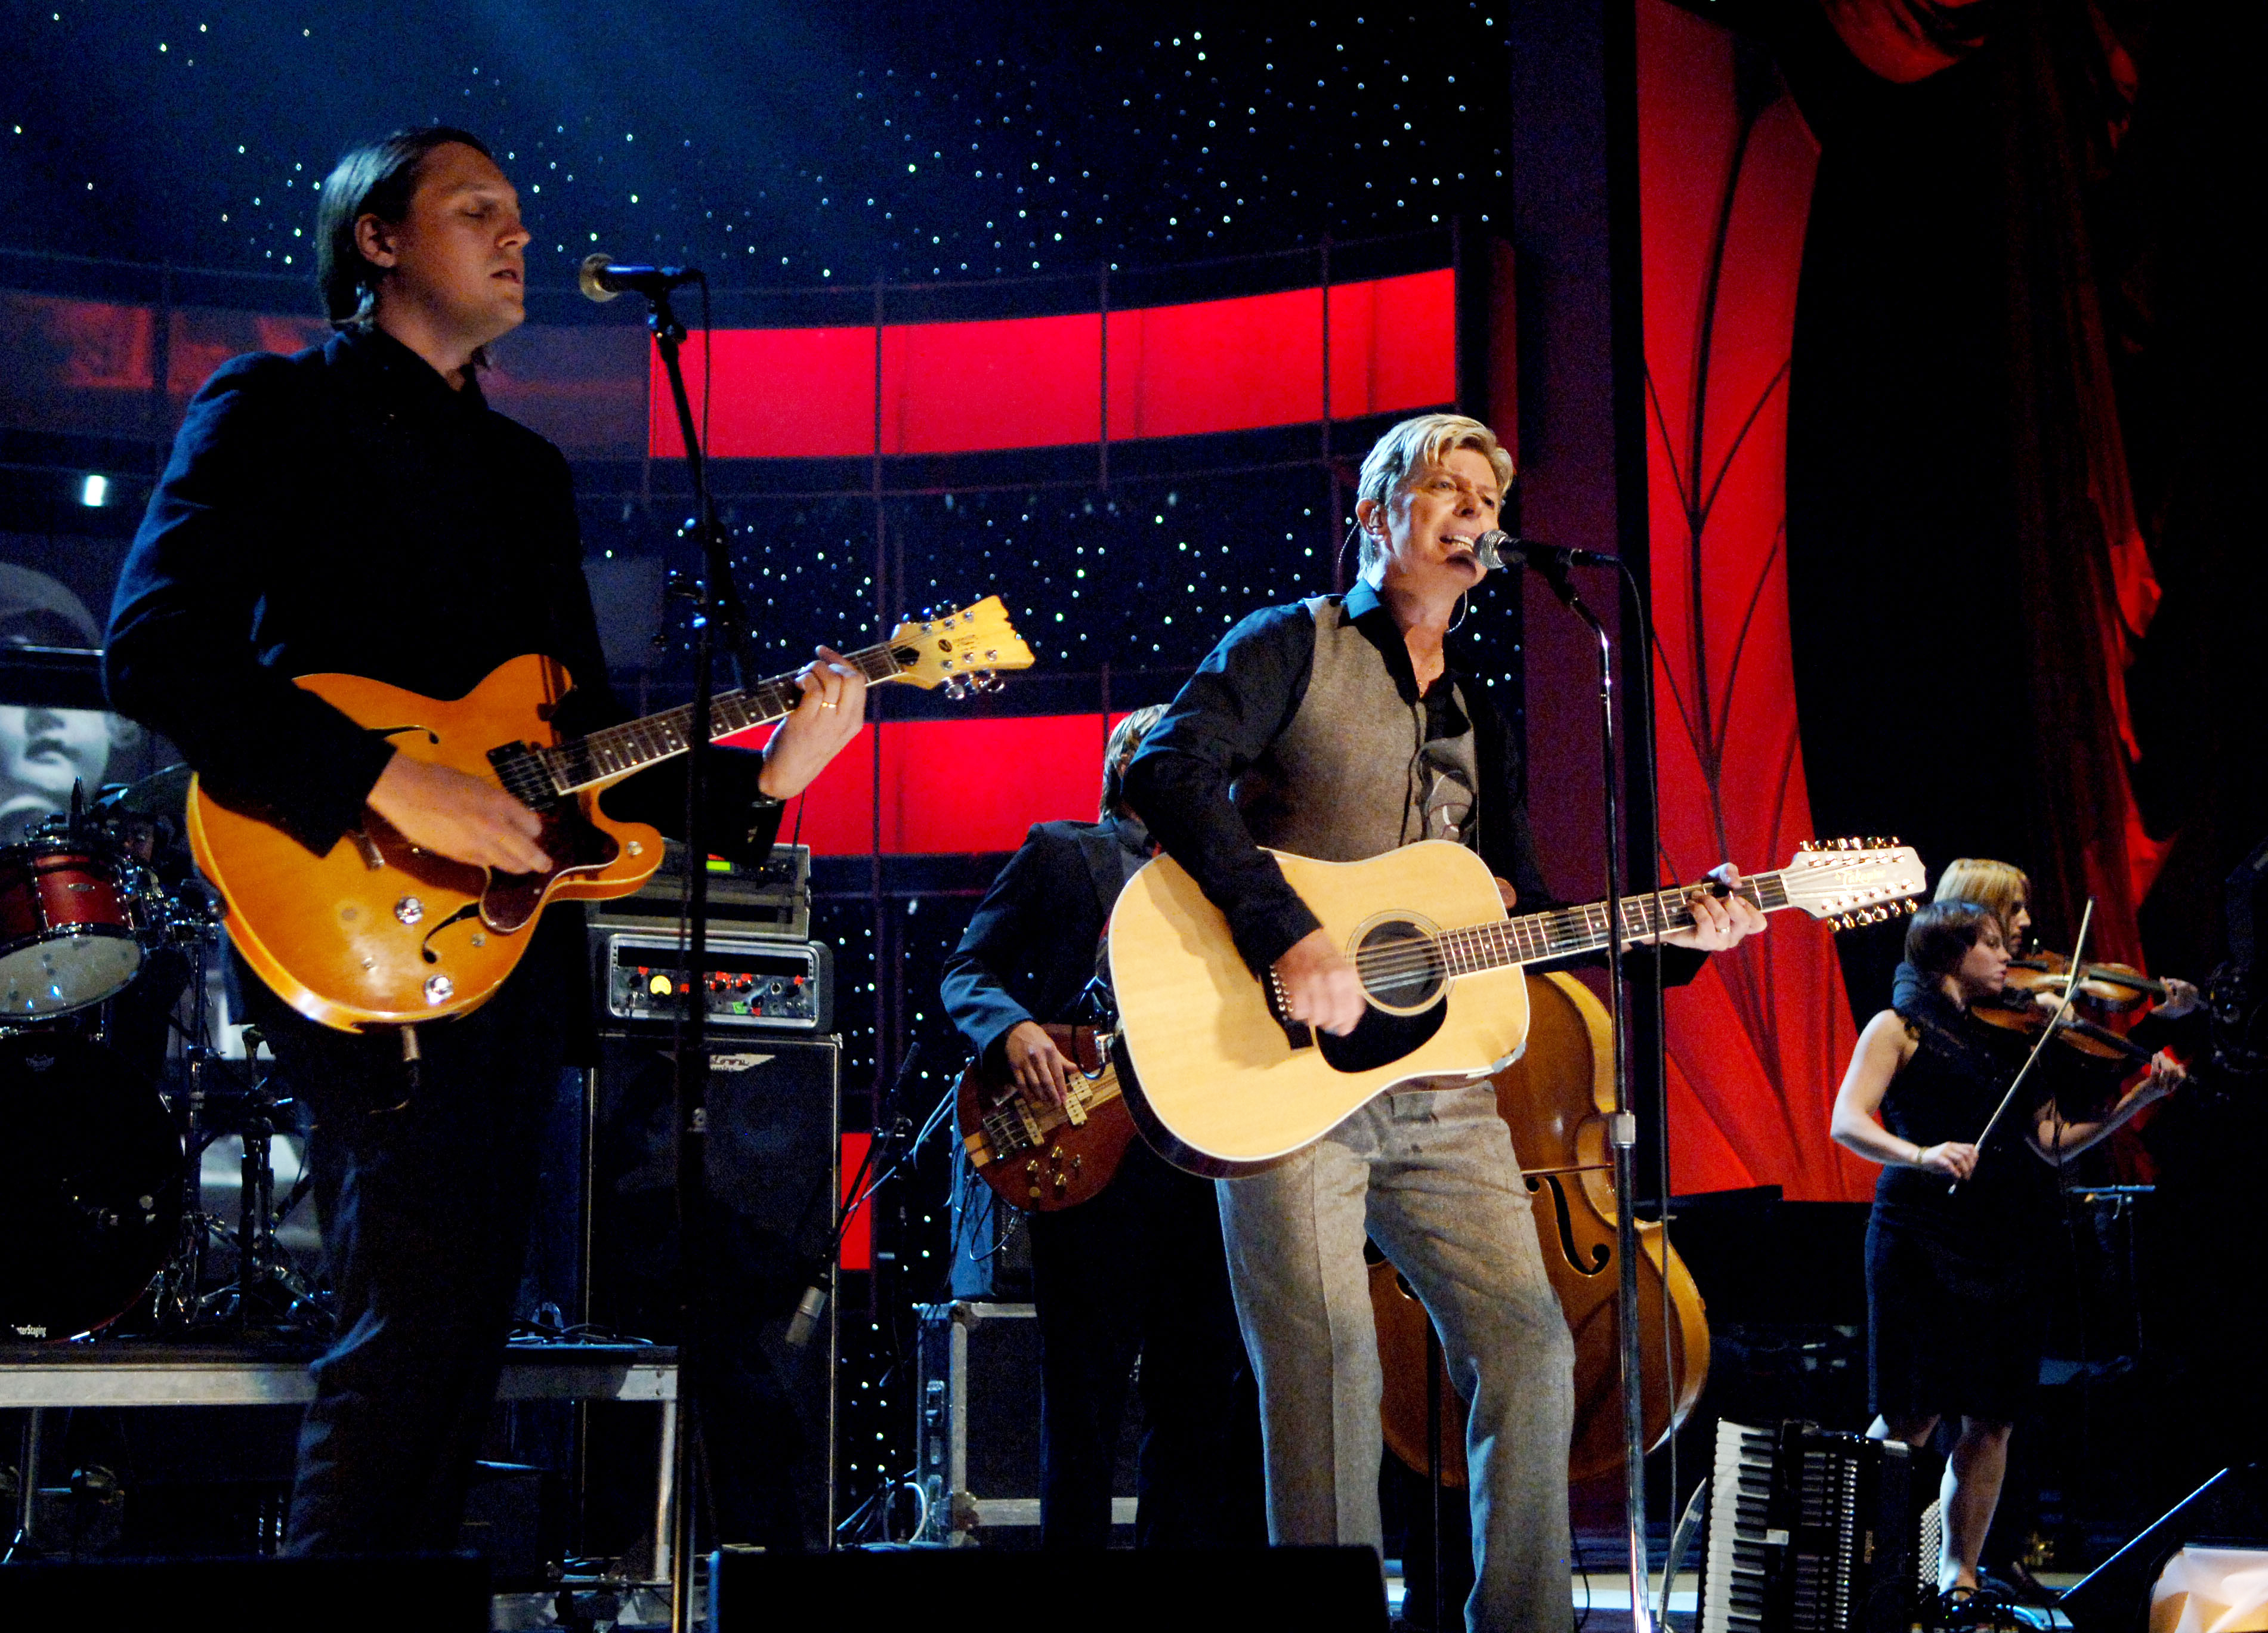 David Bowie performs with Arcade Fire at Conde Nast's 2005 Fashion Rocks Show on Sept. 8, 2005 in New York City.